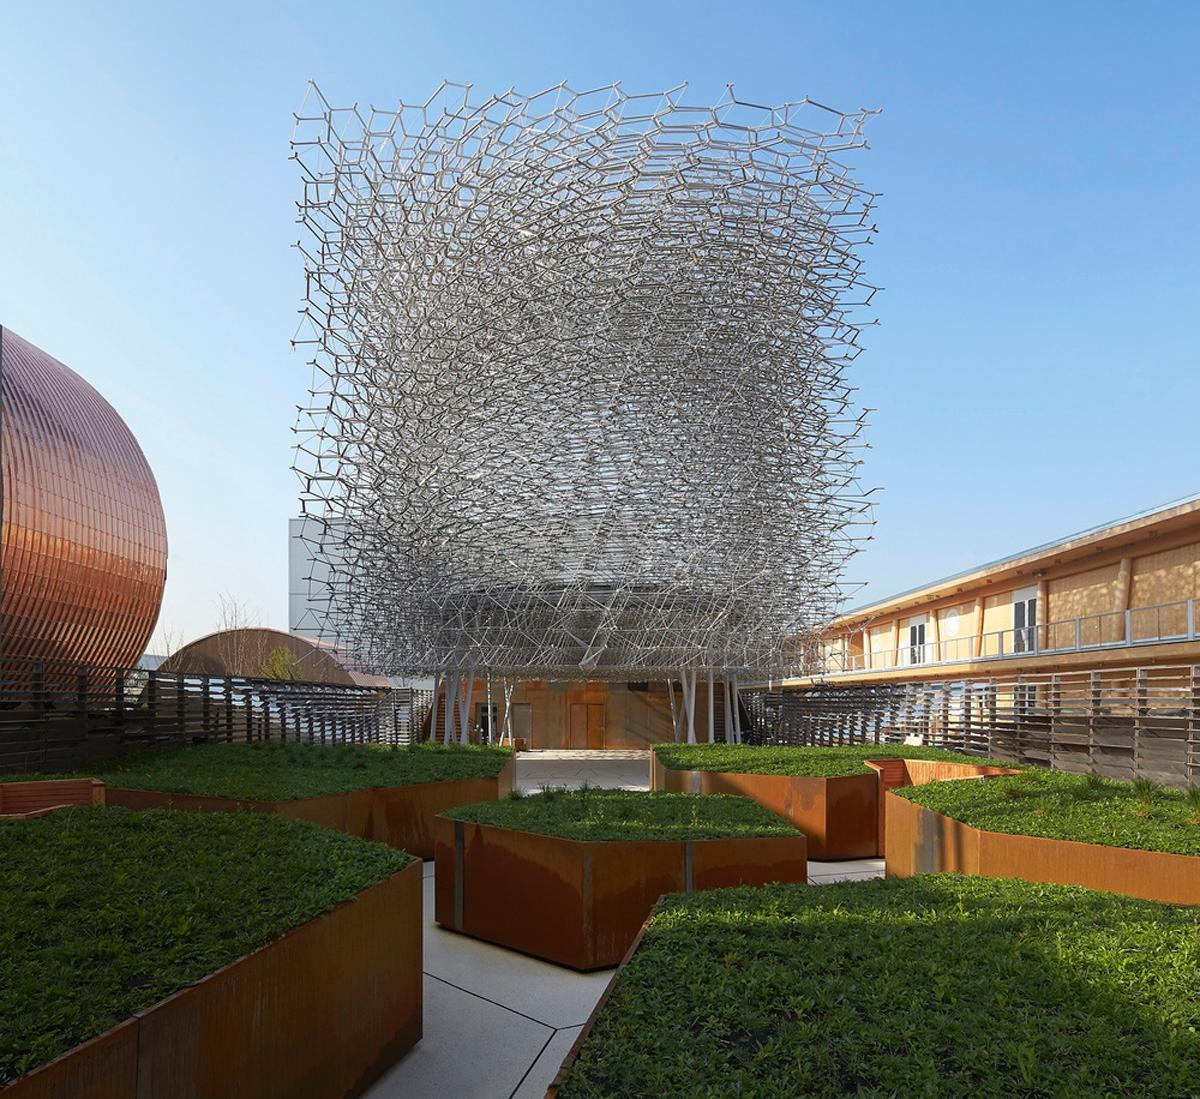 Wolfgang Buttress and BDP designed the UK pavilion for the 2015 expo